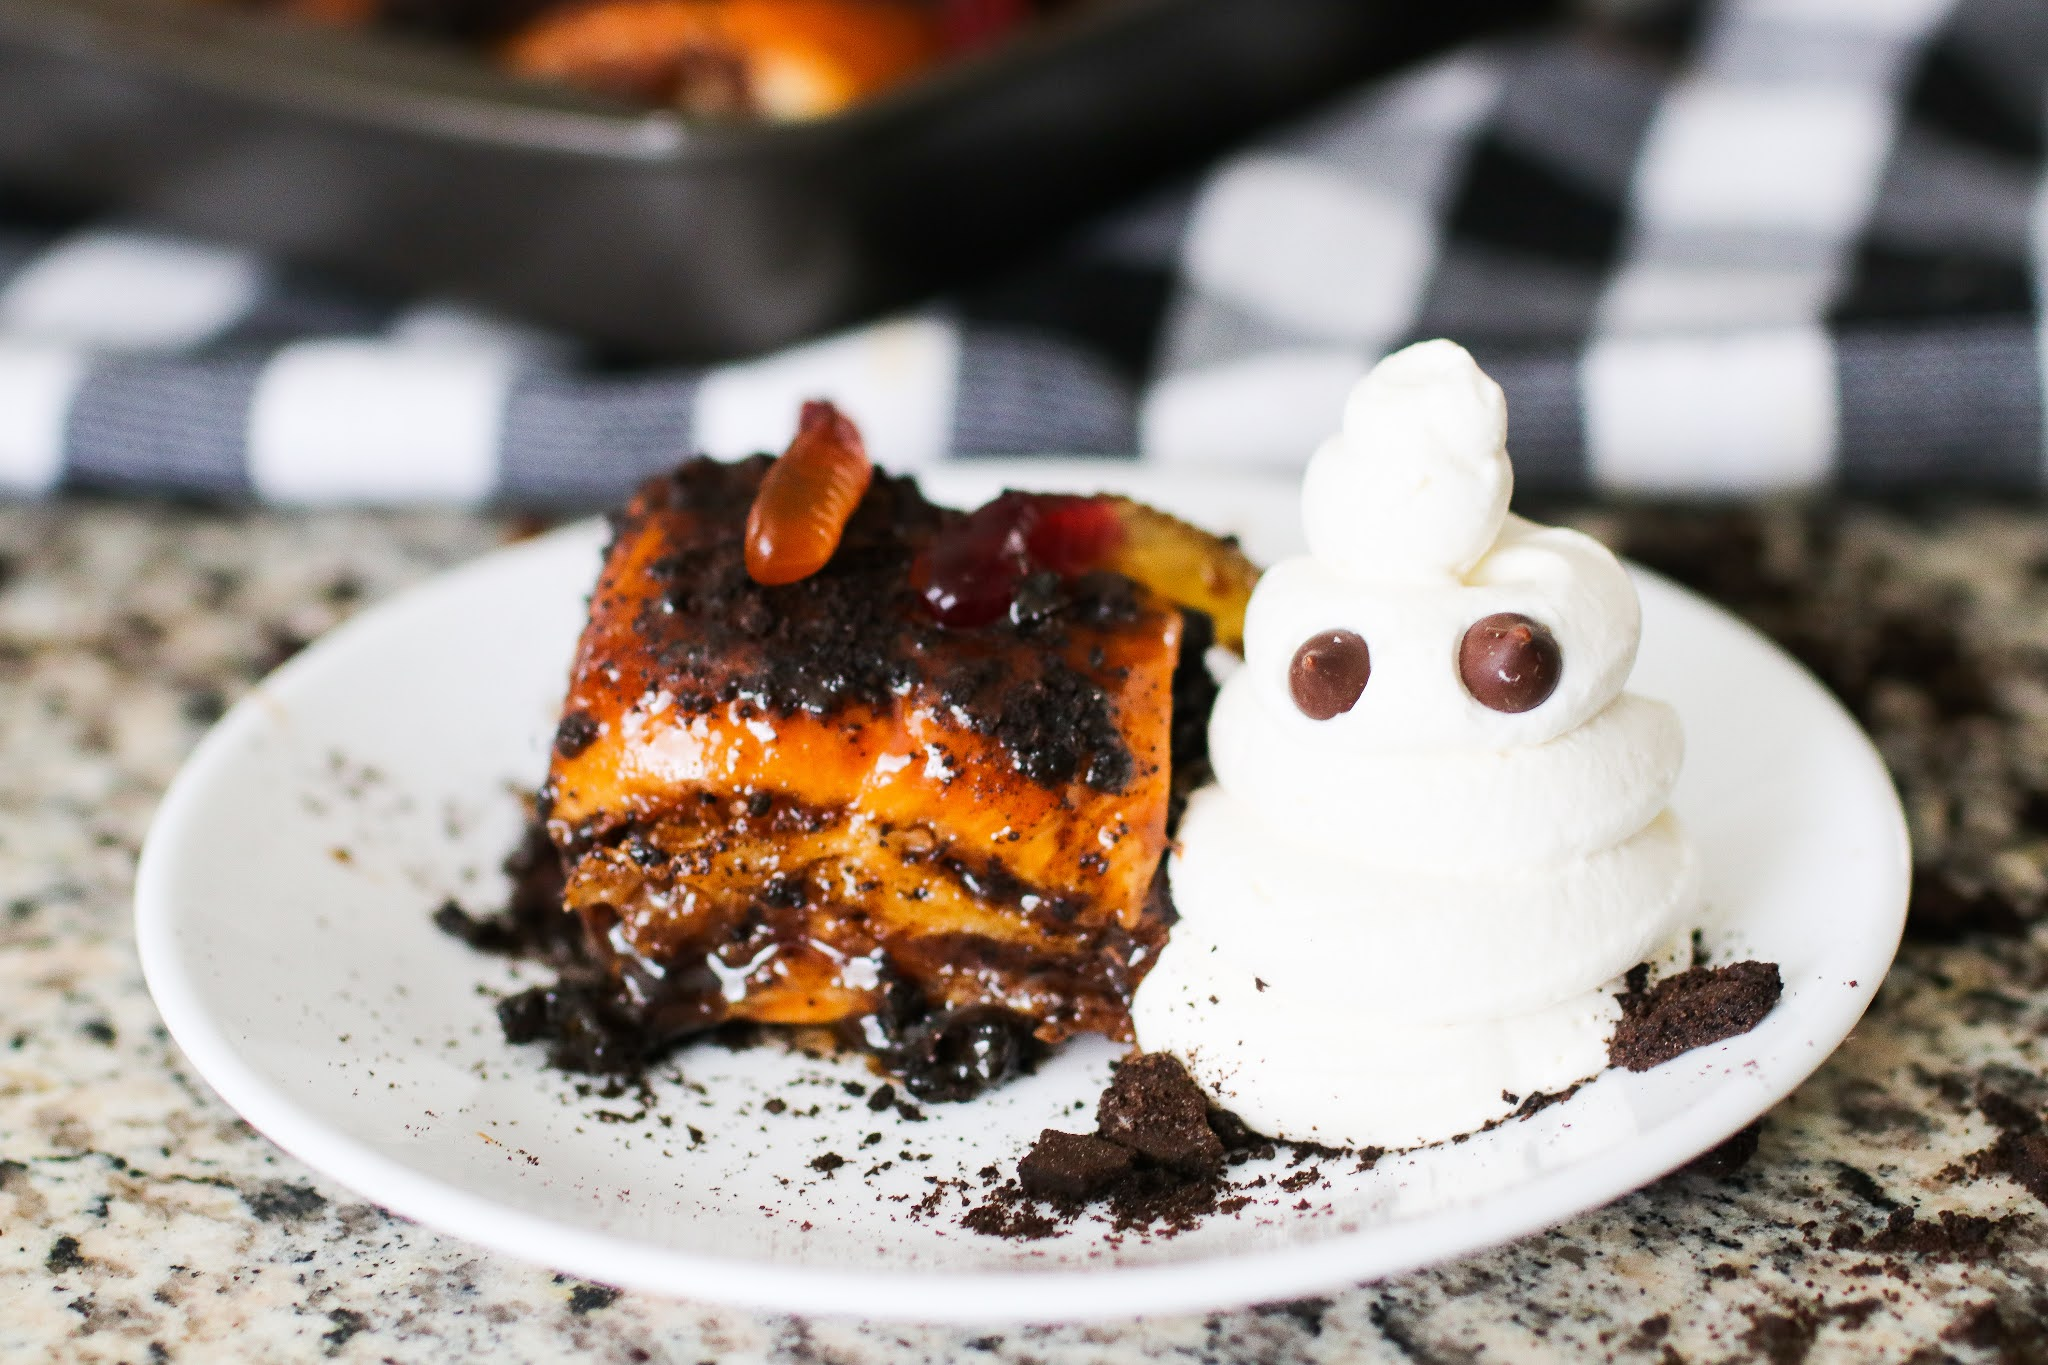 Halloween homemade sticky buns. Halloween treat recipes. Easy halloween recipes. The best halloween party treats. Halloween snack ideas. Halloween party food. Spooky halloween treats for kids. #kids #fun #Party #halloween #chocolate #baking #familyfun